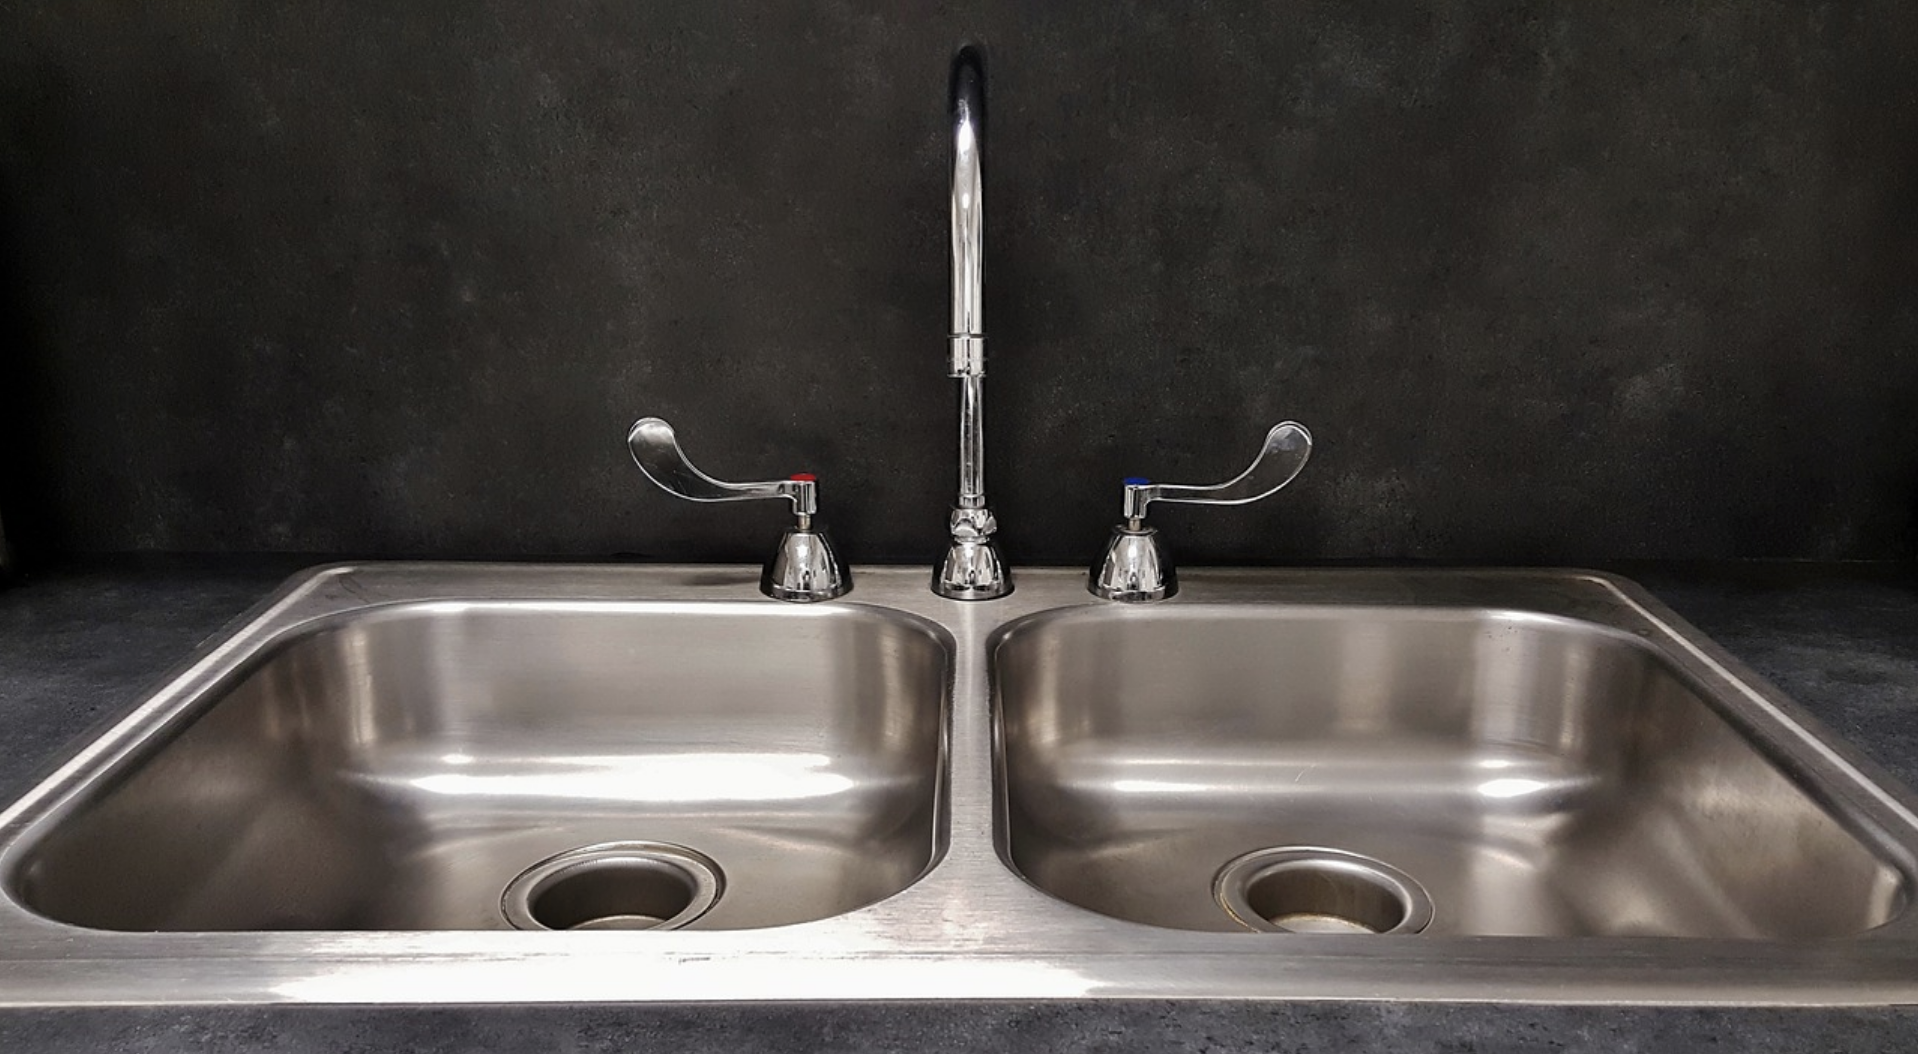 Strainless steel double bowl sink. Depicting a bit shallower bowls.